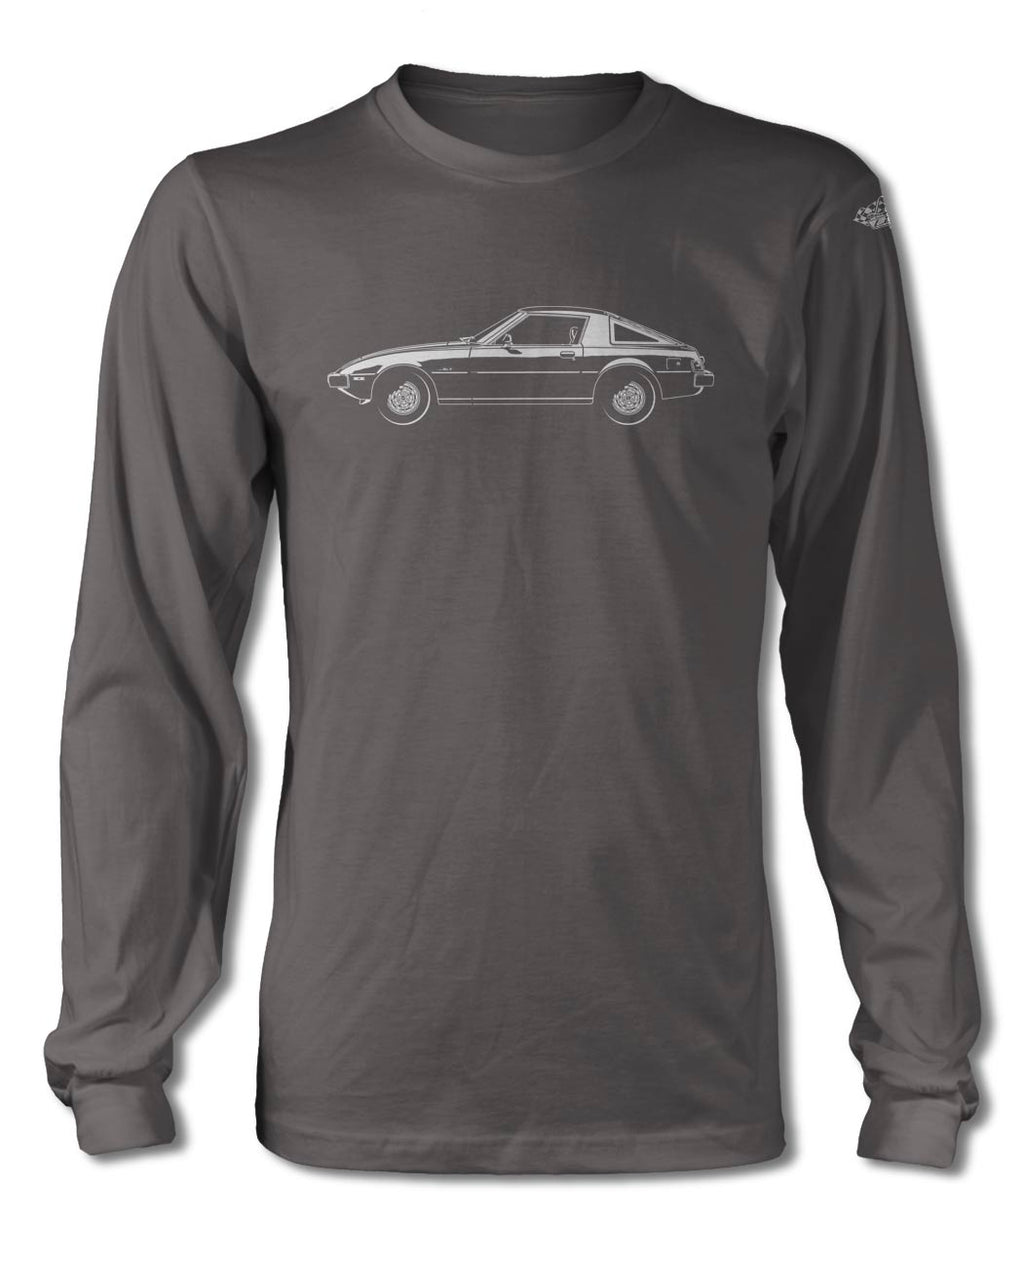 Mazda RX-7 S1 First generation 1978 - 1985 T-Shirt - Long Sleeves - Side View